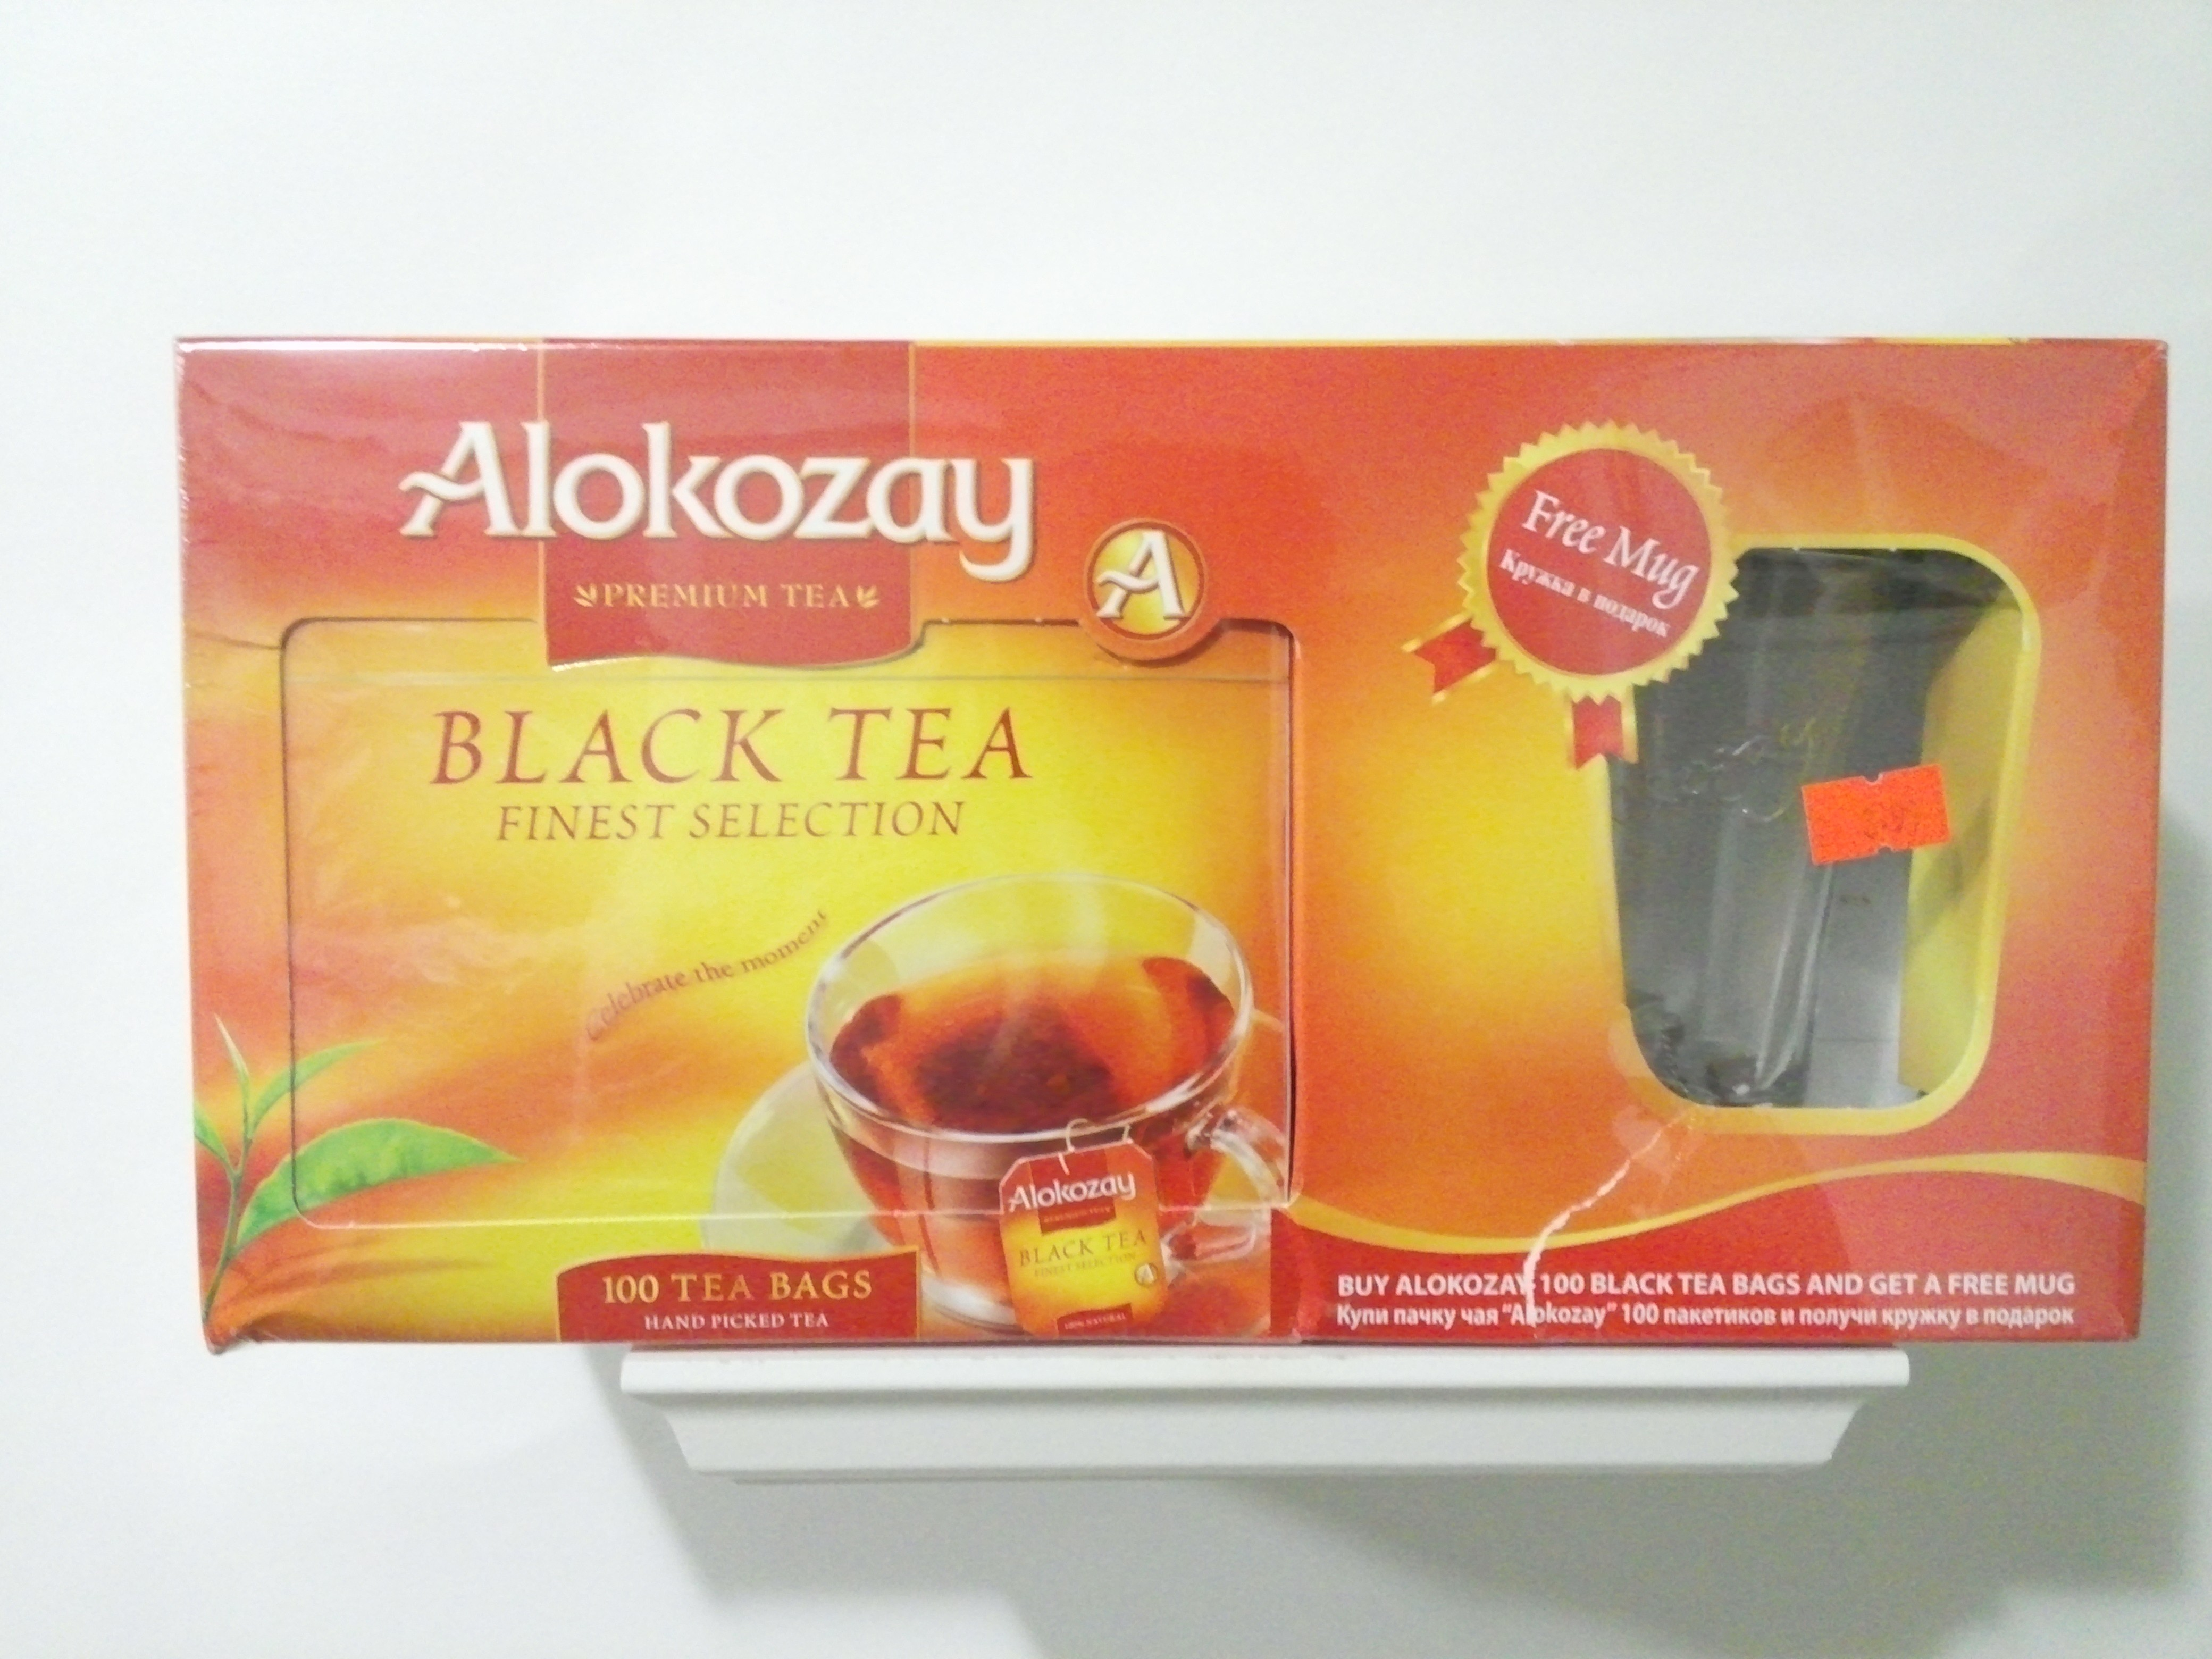 Alokozay Black Tea 100 Bags with a free mug